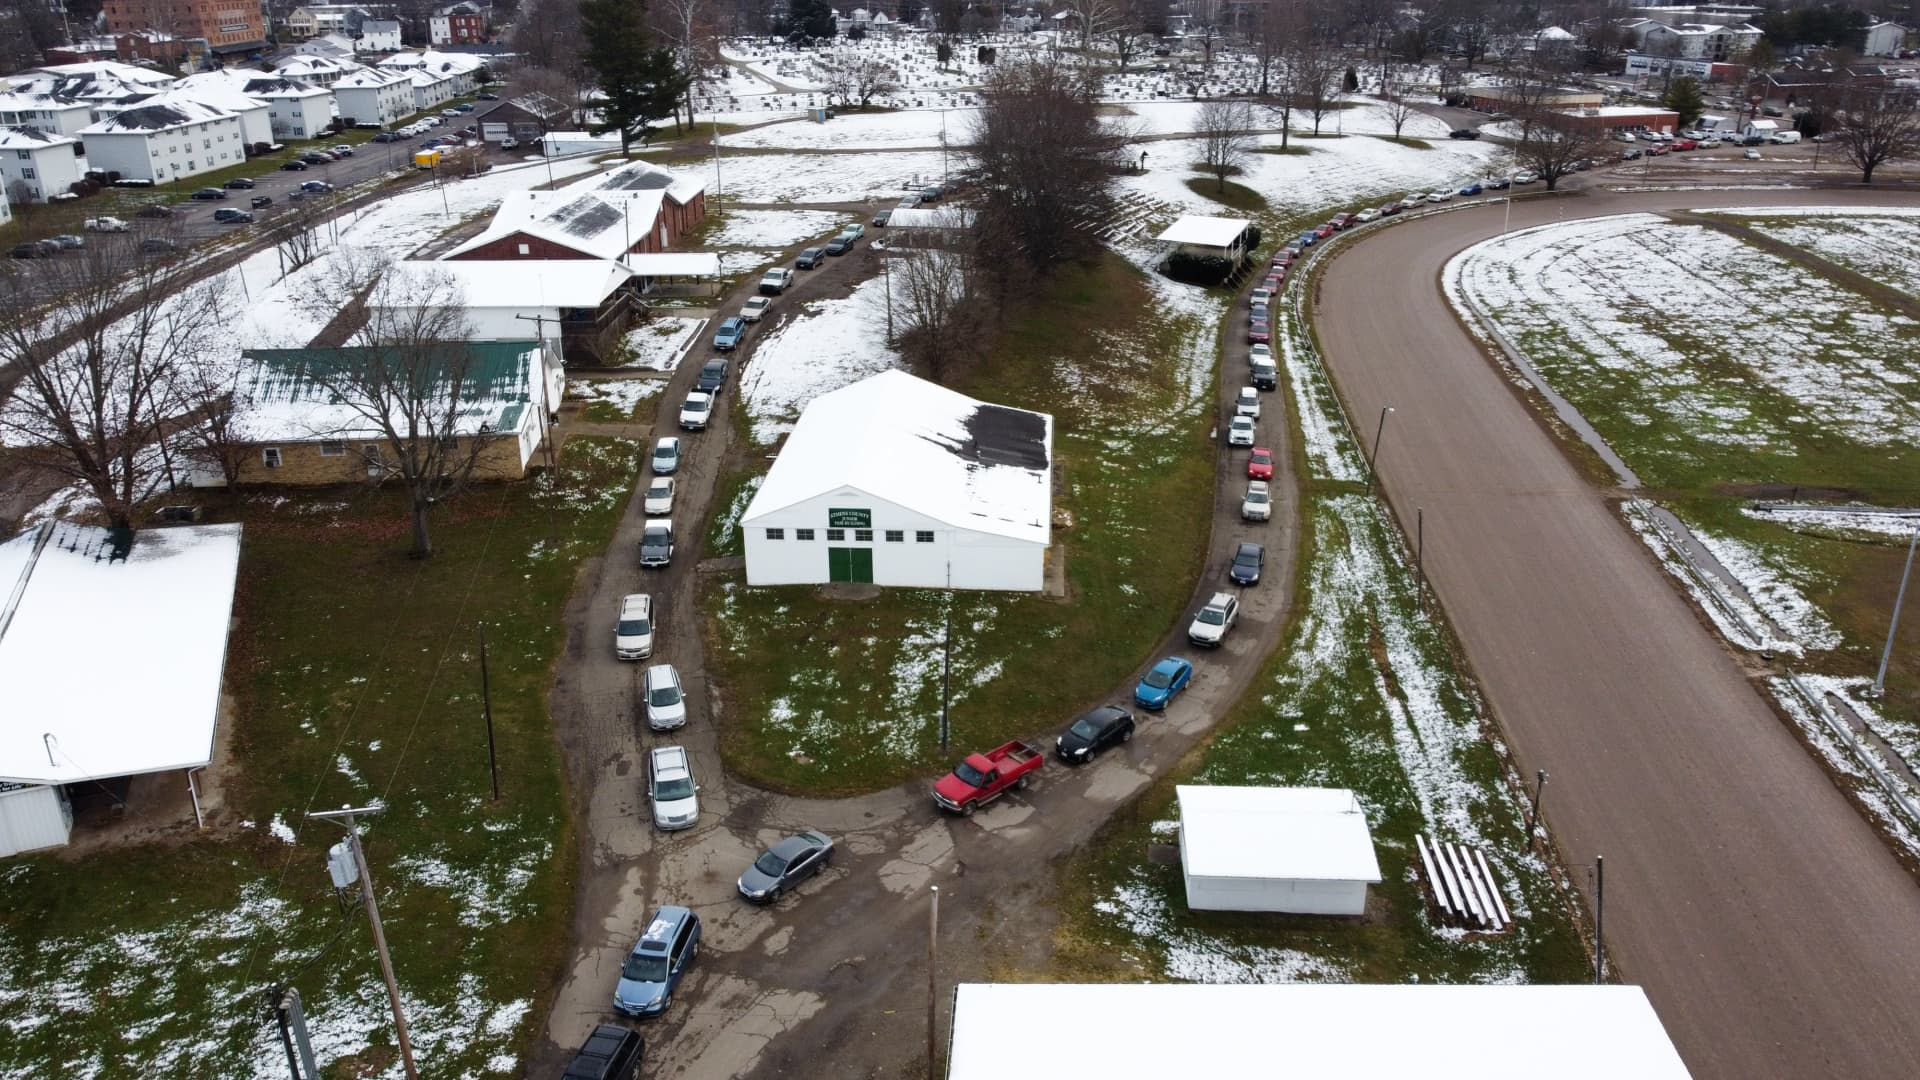 Cars line up to pick up food boxes at the Athens County Fairgrounds in Athens, Ohio on Dec. 19, 2020.